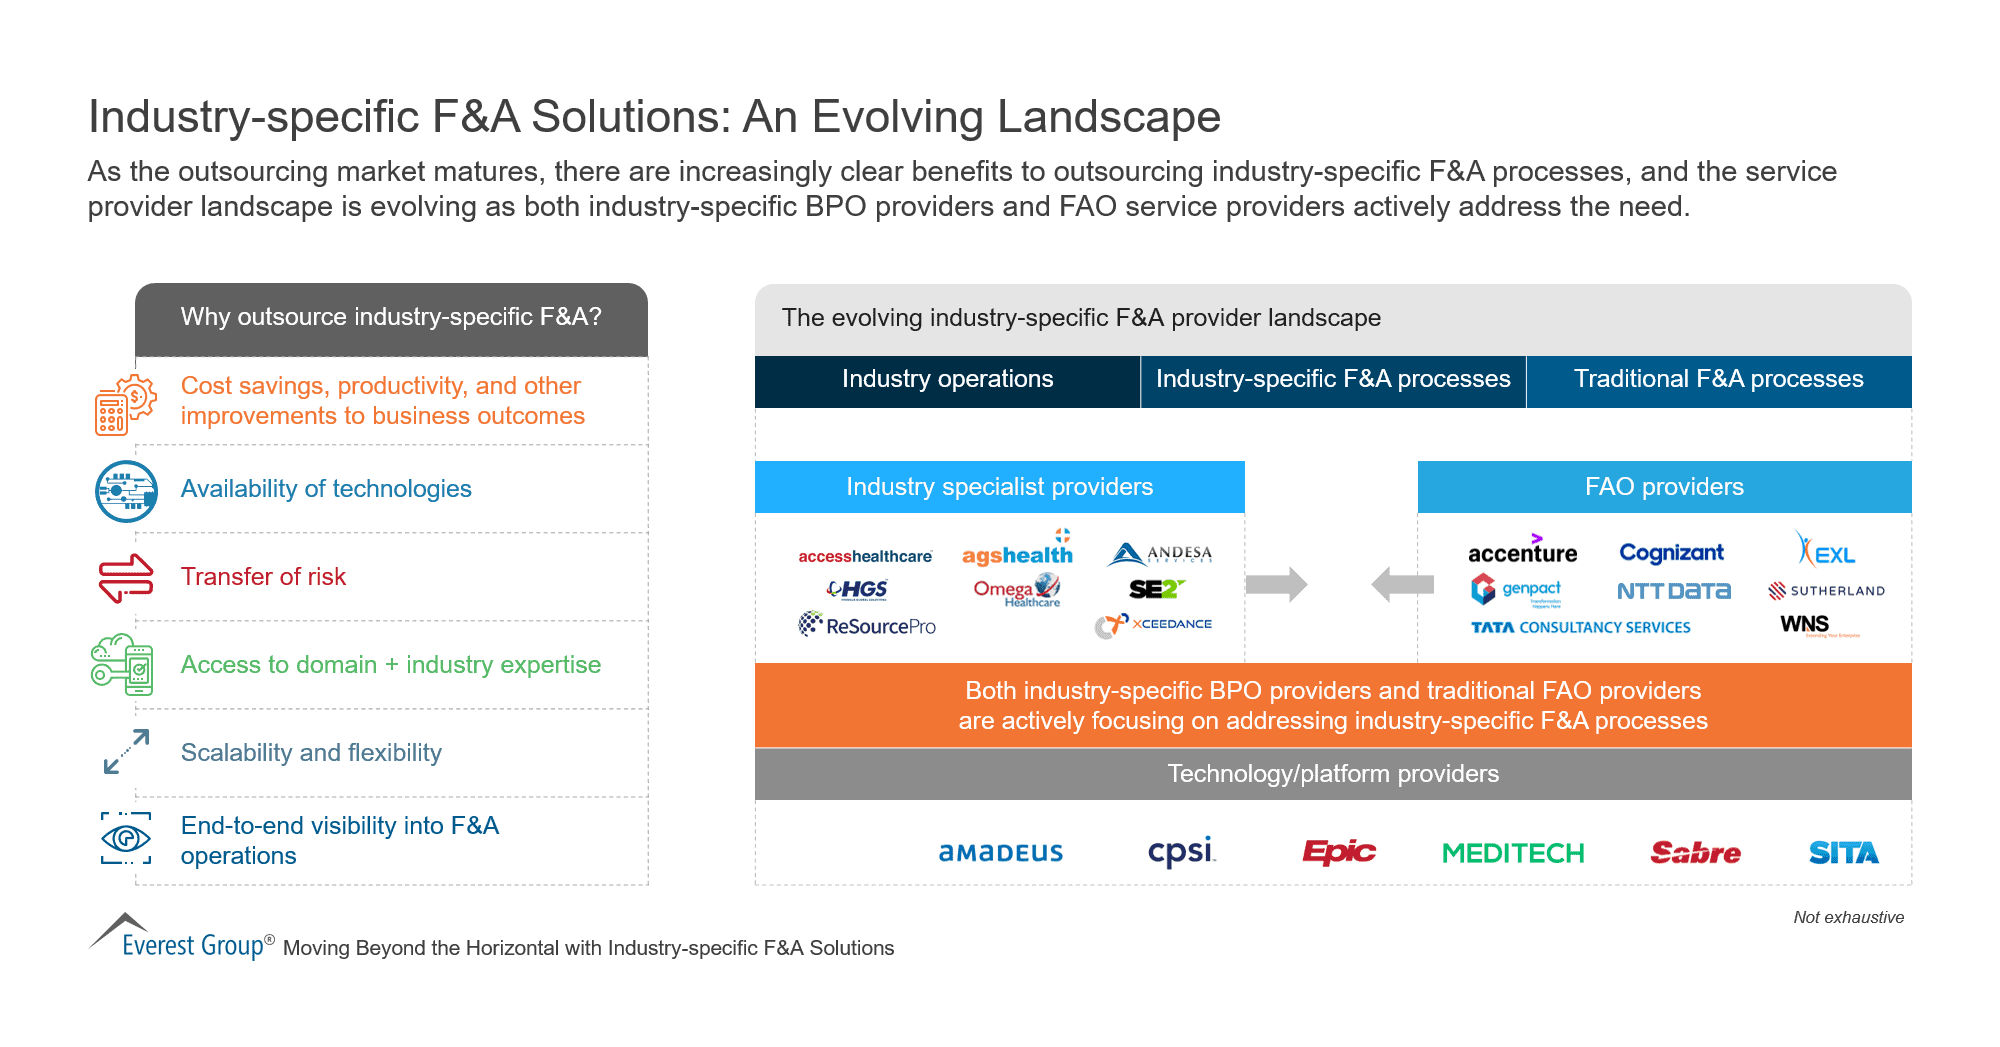 Industry-specific F&A Solutions-An Evolving Landscape